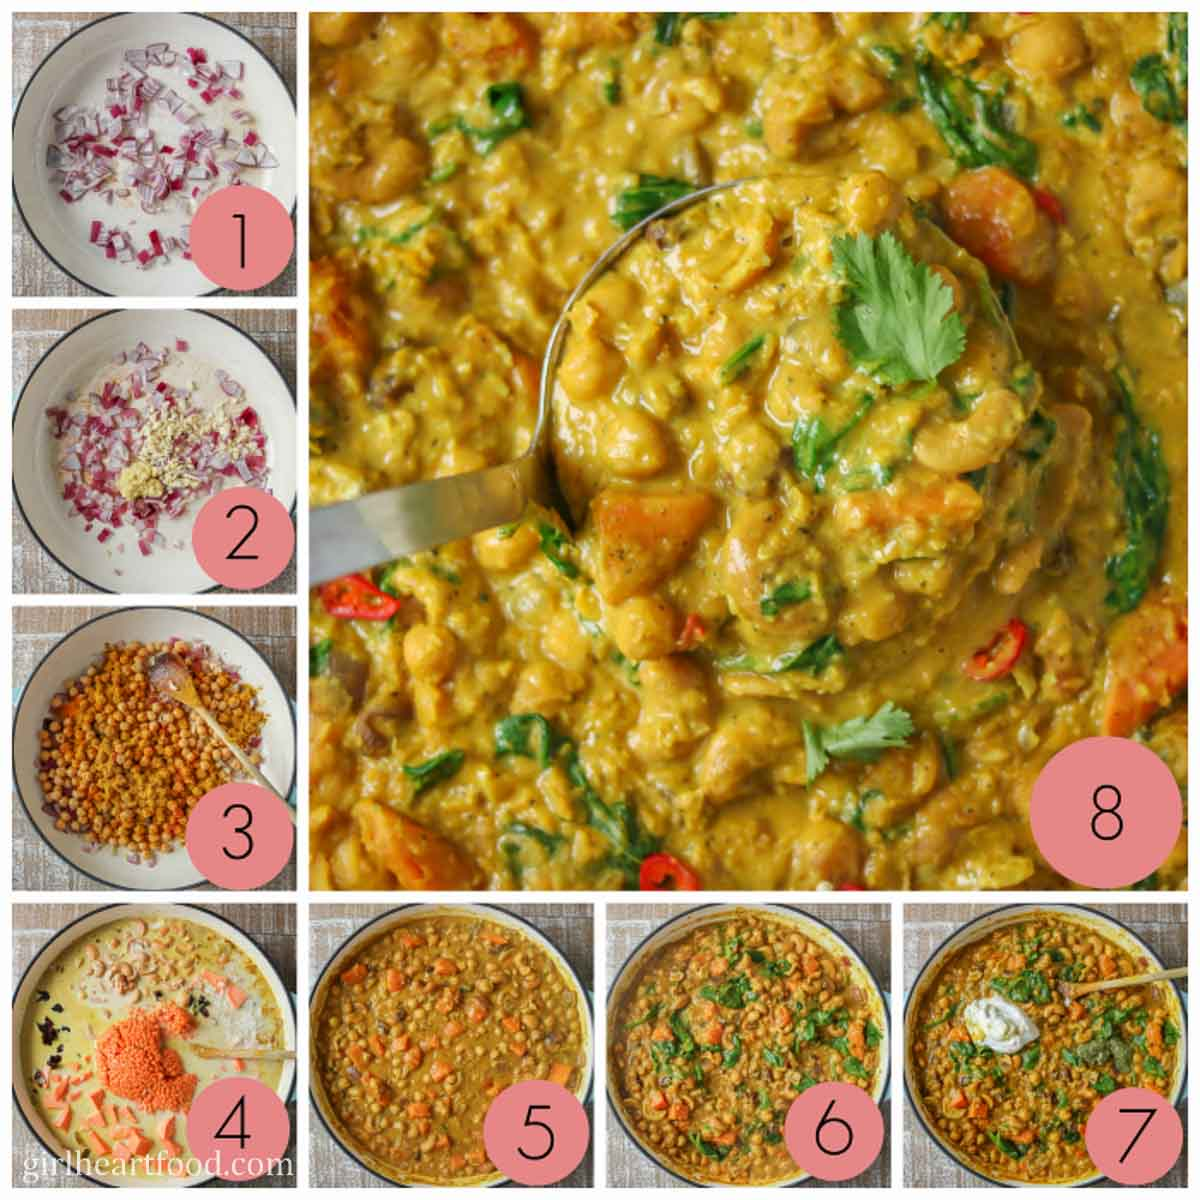 Collage of steps to make chickpea lentil curry with coconut milk and vegetables.